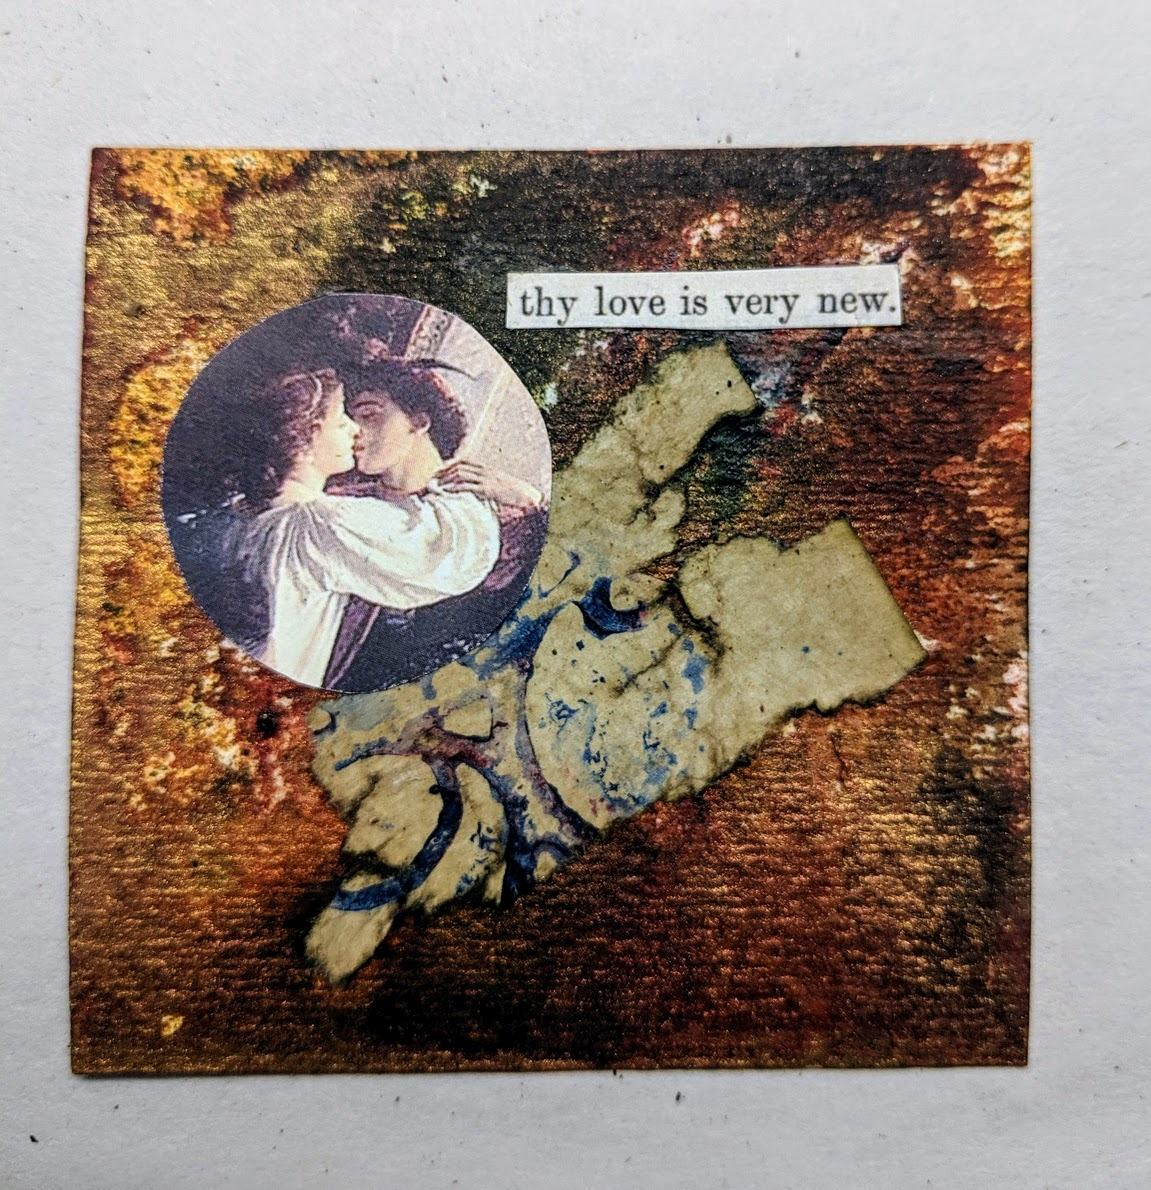 225: 3x3 card with dyes & collage